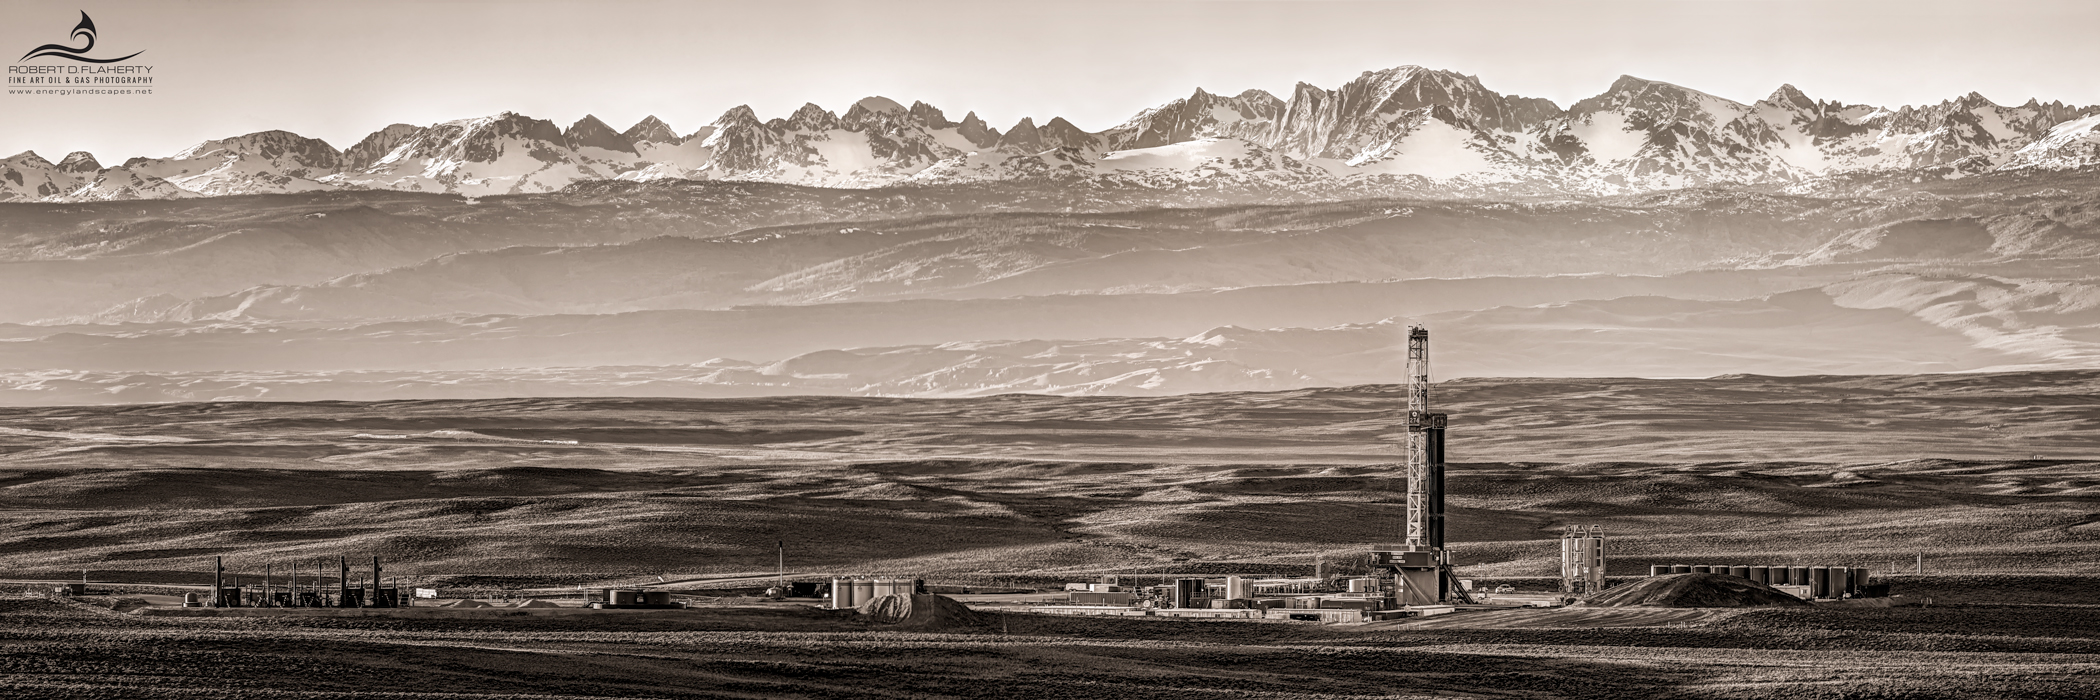 Patterson UTI, drilling rig, 2014, Wyoming, Wind River Mountains, Pinedale Anticline, high resolution, panorama, panoramic, spring, snow, gigapixel, sepia, black & white, photo